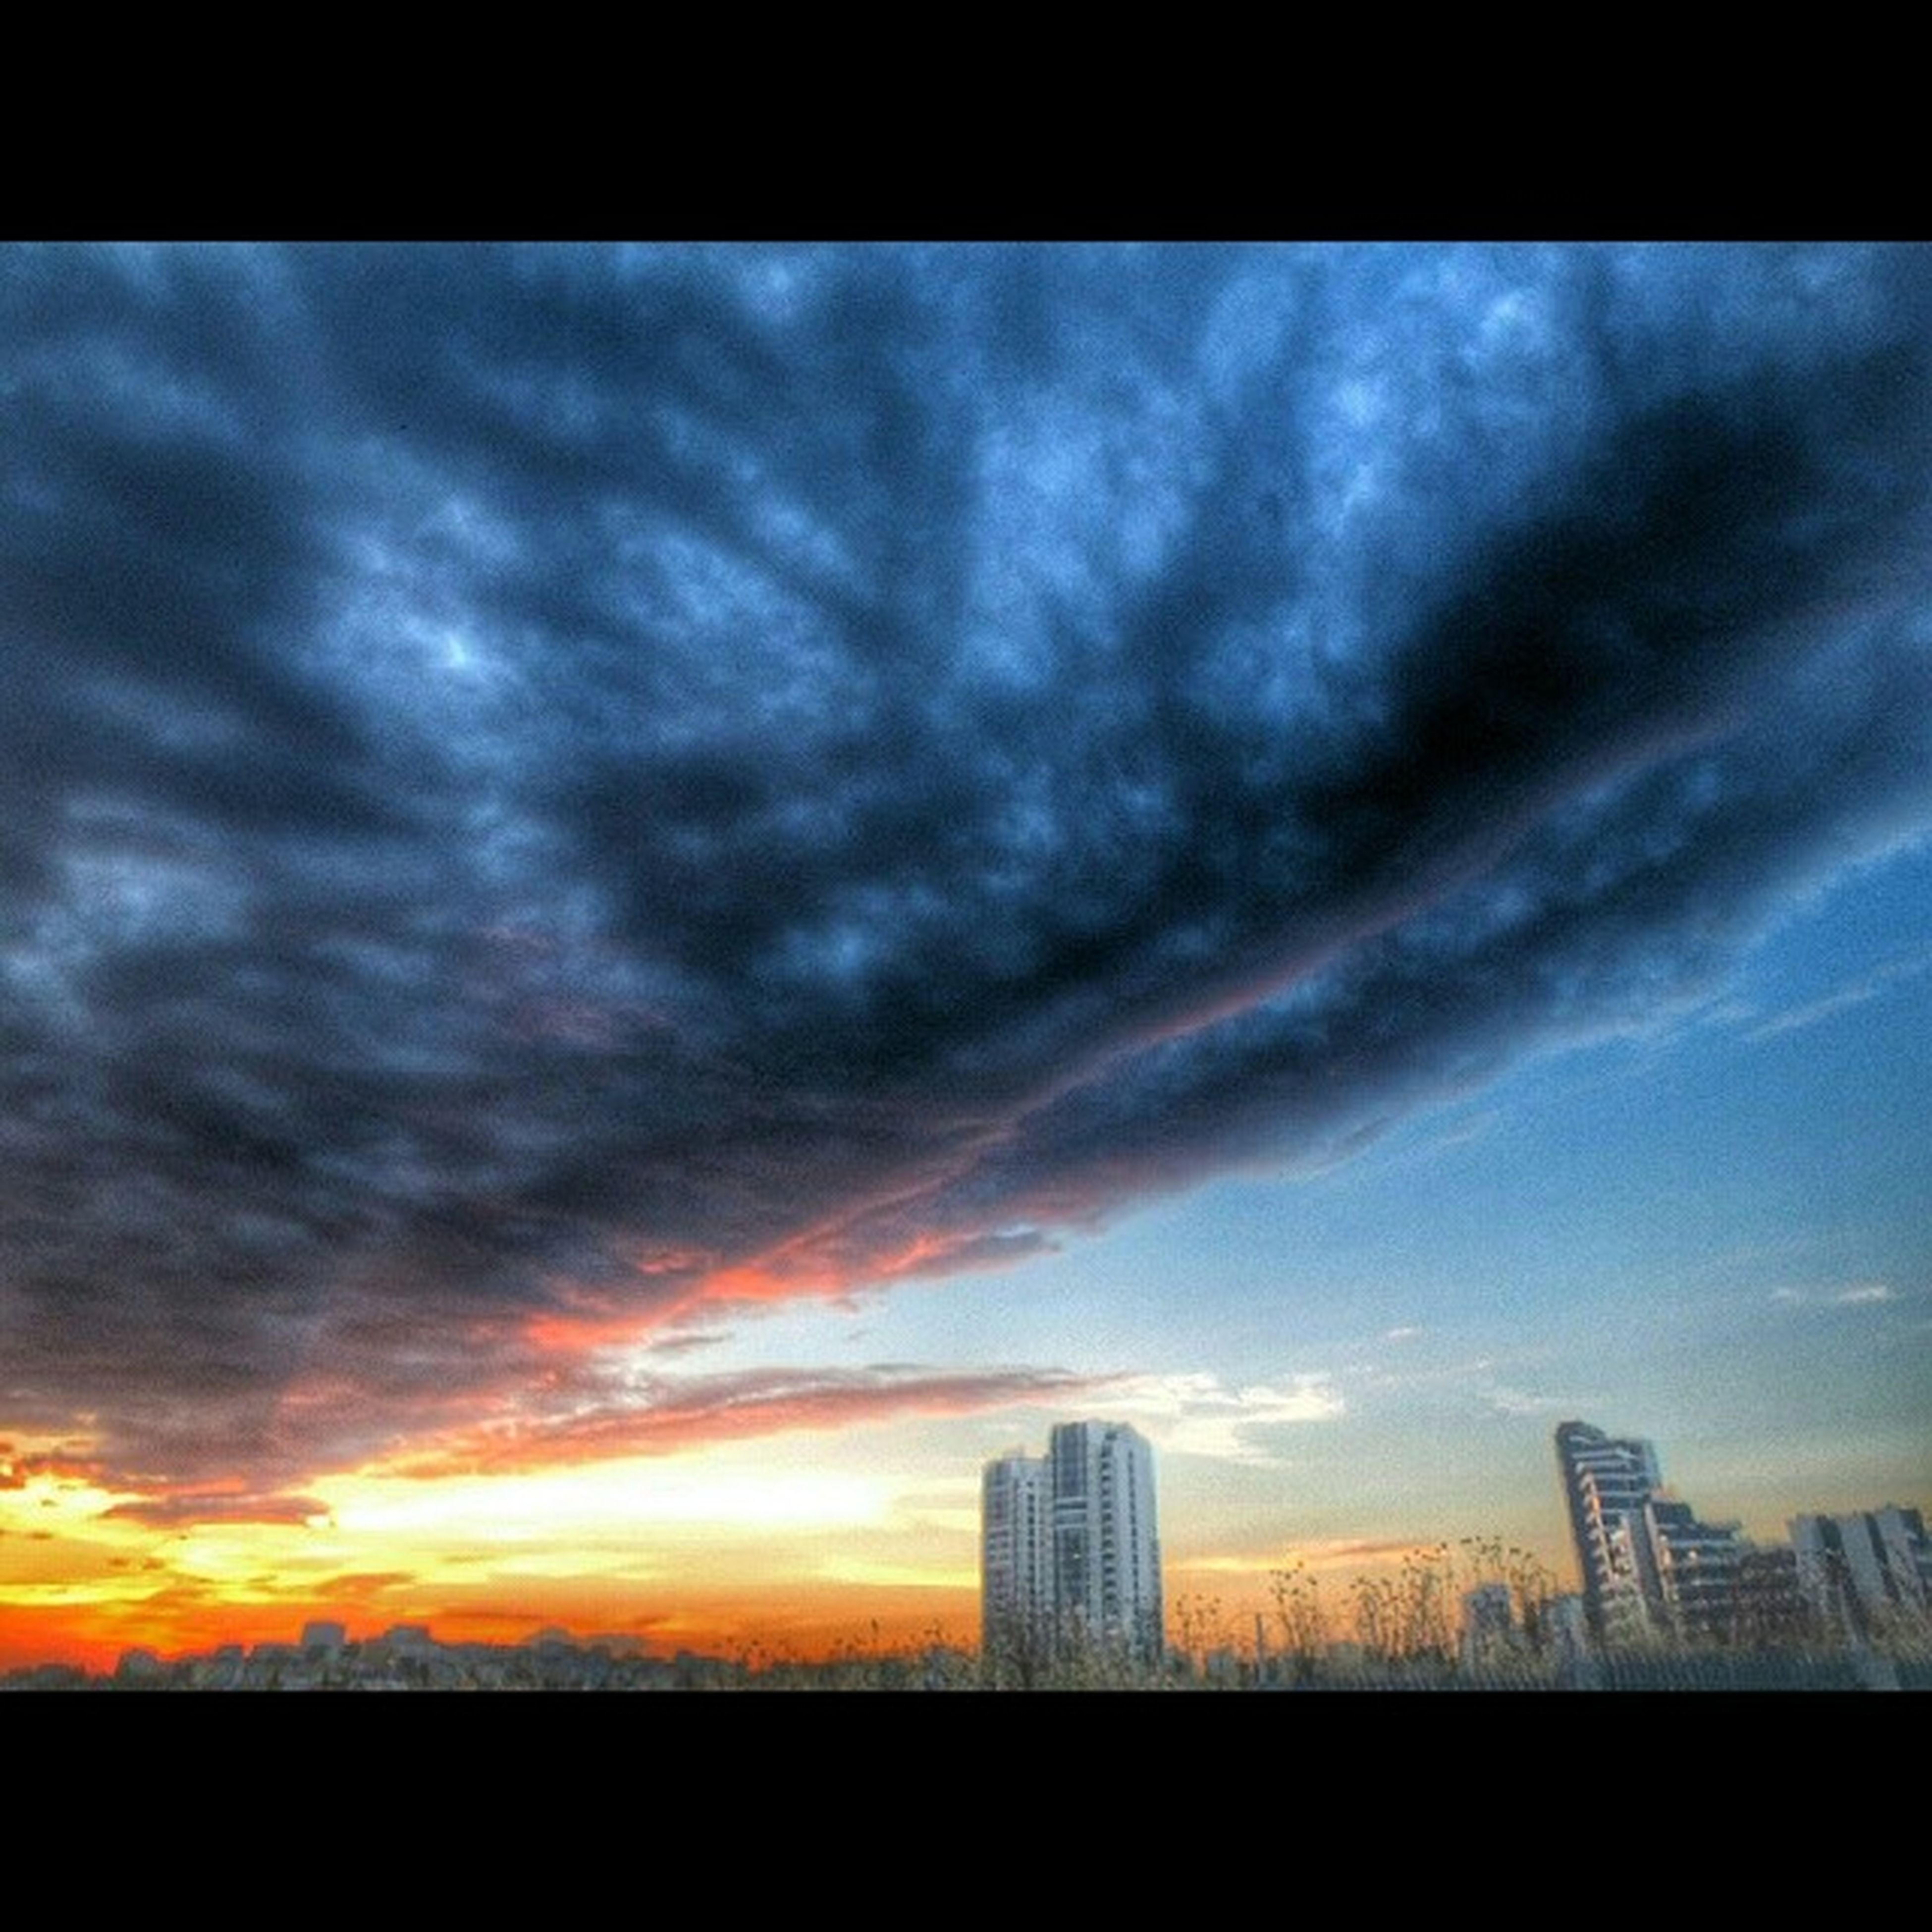 sunset, sky, building exterior, architecture, built structure, cloud - sky, silhouette, city, transfer print, skyscraper, cloudy, low angle view, cloud, auto post production filter, dramatic sky, orange color, tower, tall - high, weather, modern